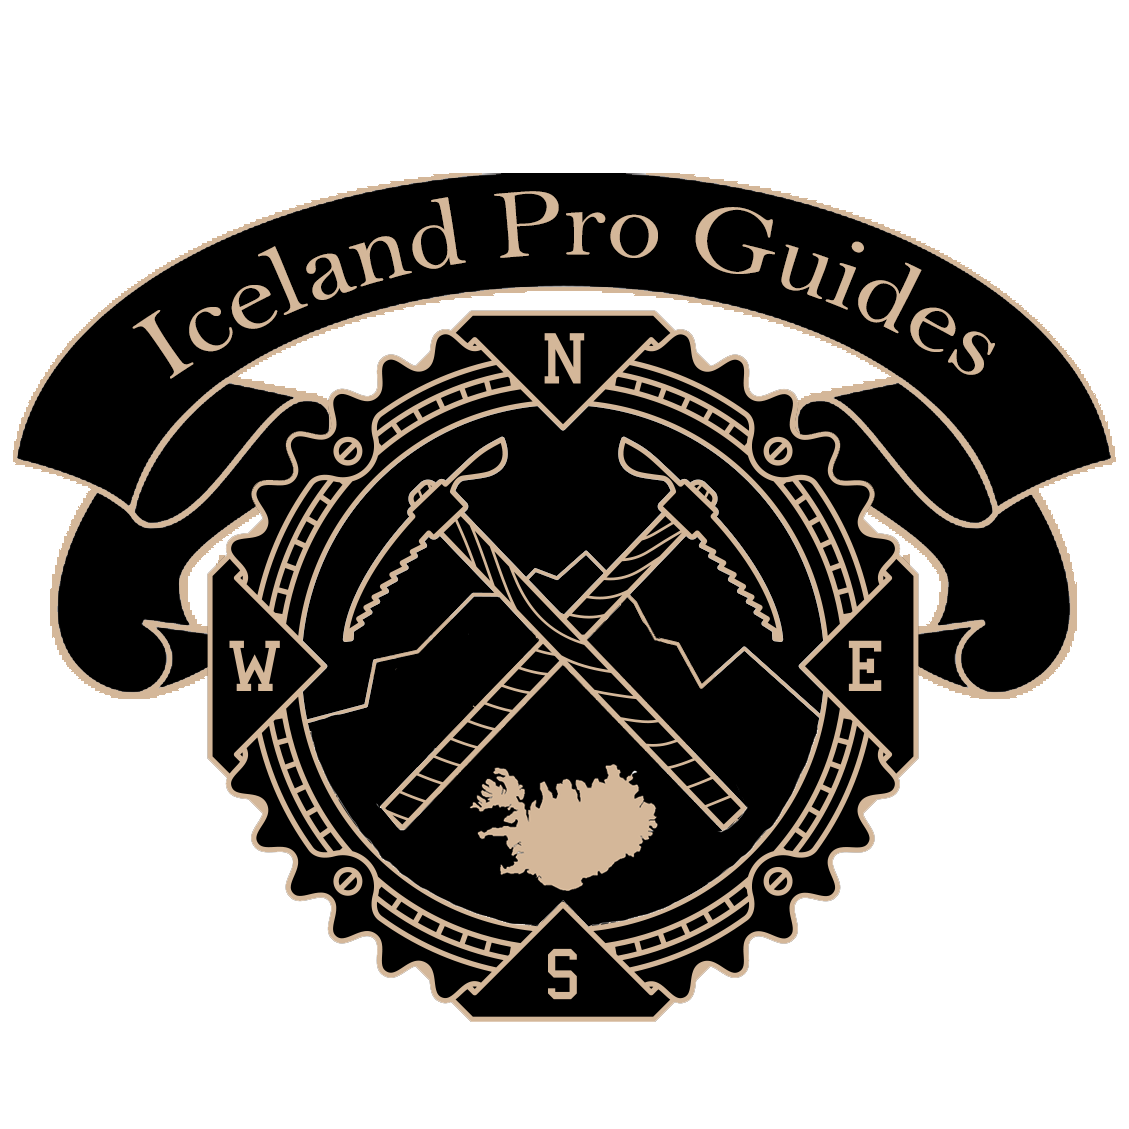 Iceland Pro Guides